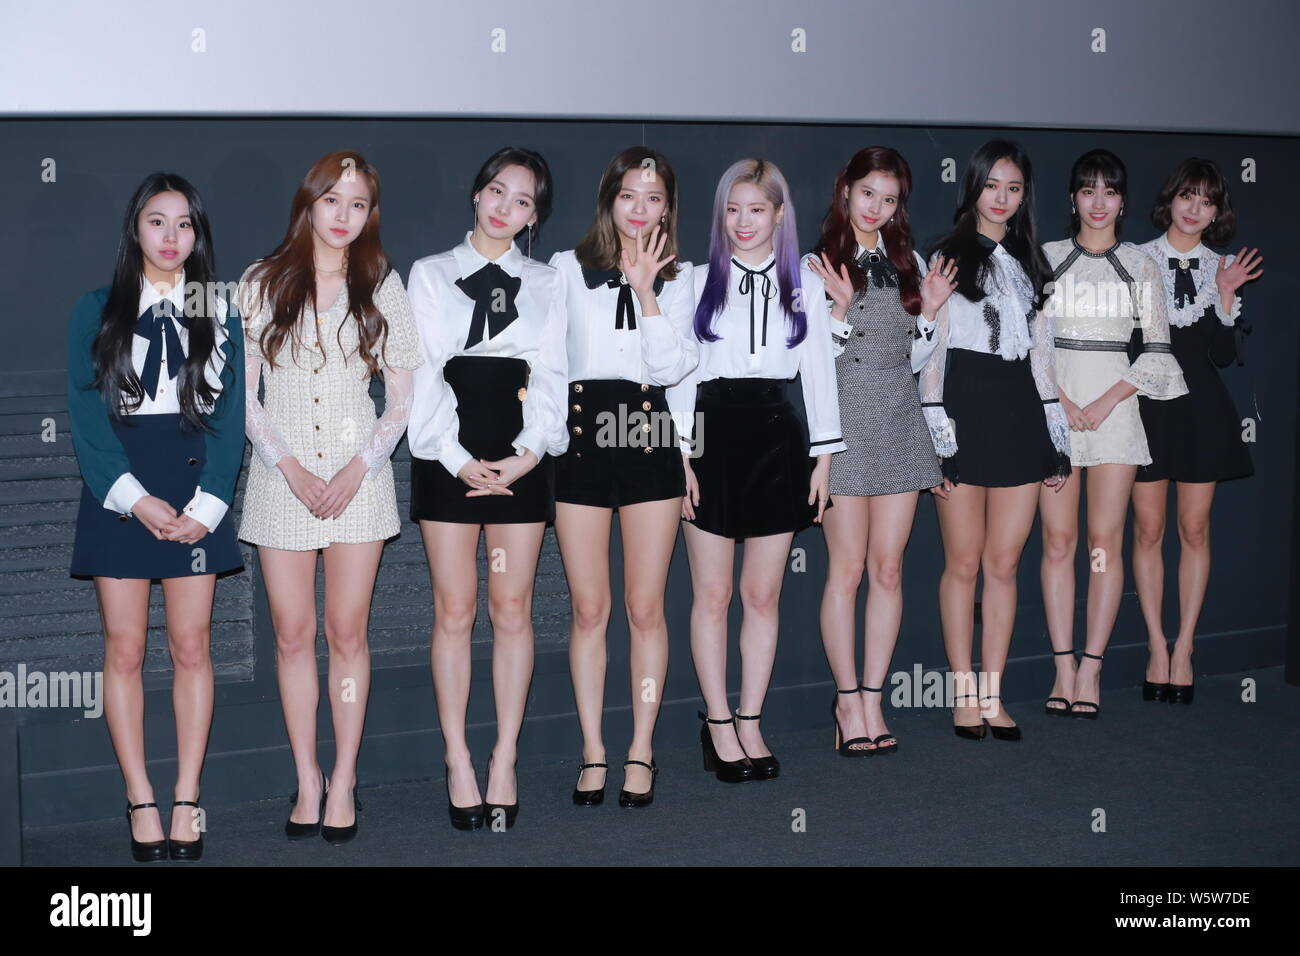 members of south korean girl group twice pose as they attend a press conference for the movie twiceland in seoul south korea 6 december 2018 stock photo alamy https www alamy com members of south korean girl group twice pose as they attend a press conference for the movie twiceland in seoul south korea 6 december 2018 image261783466 html